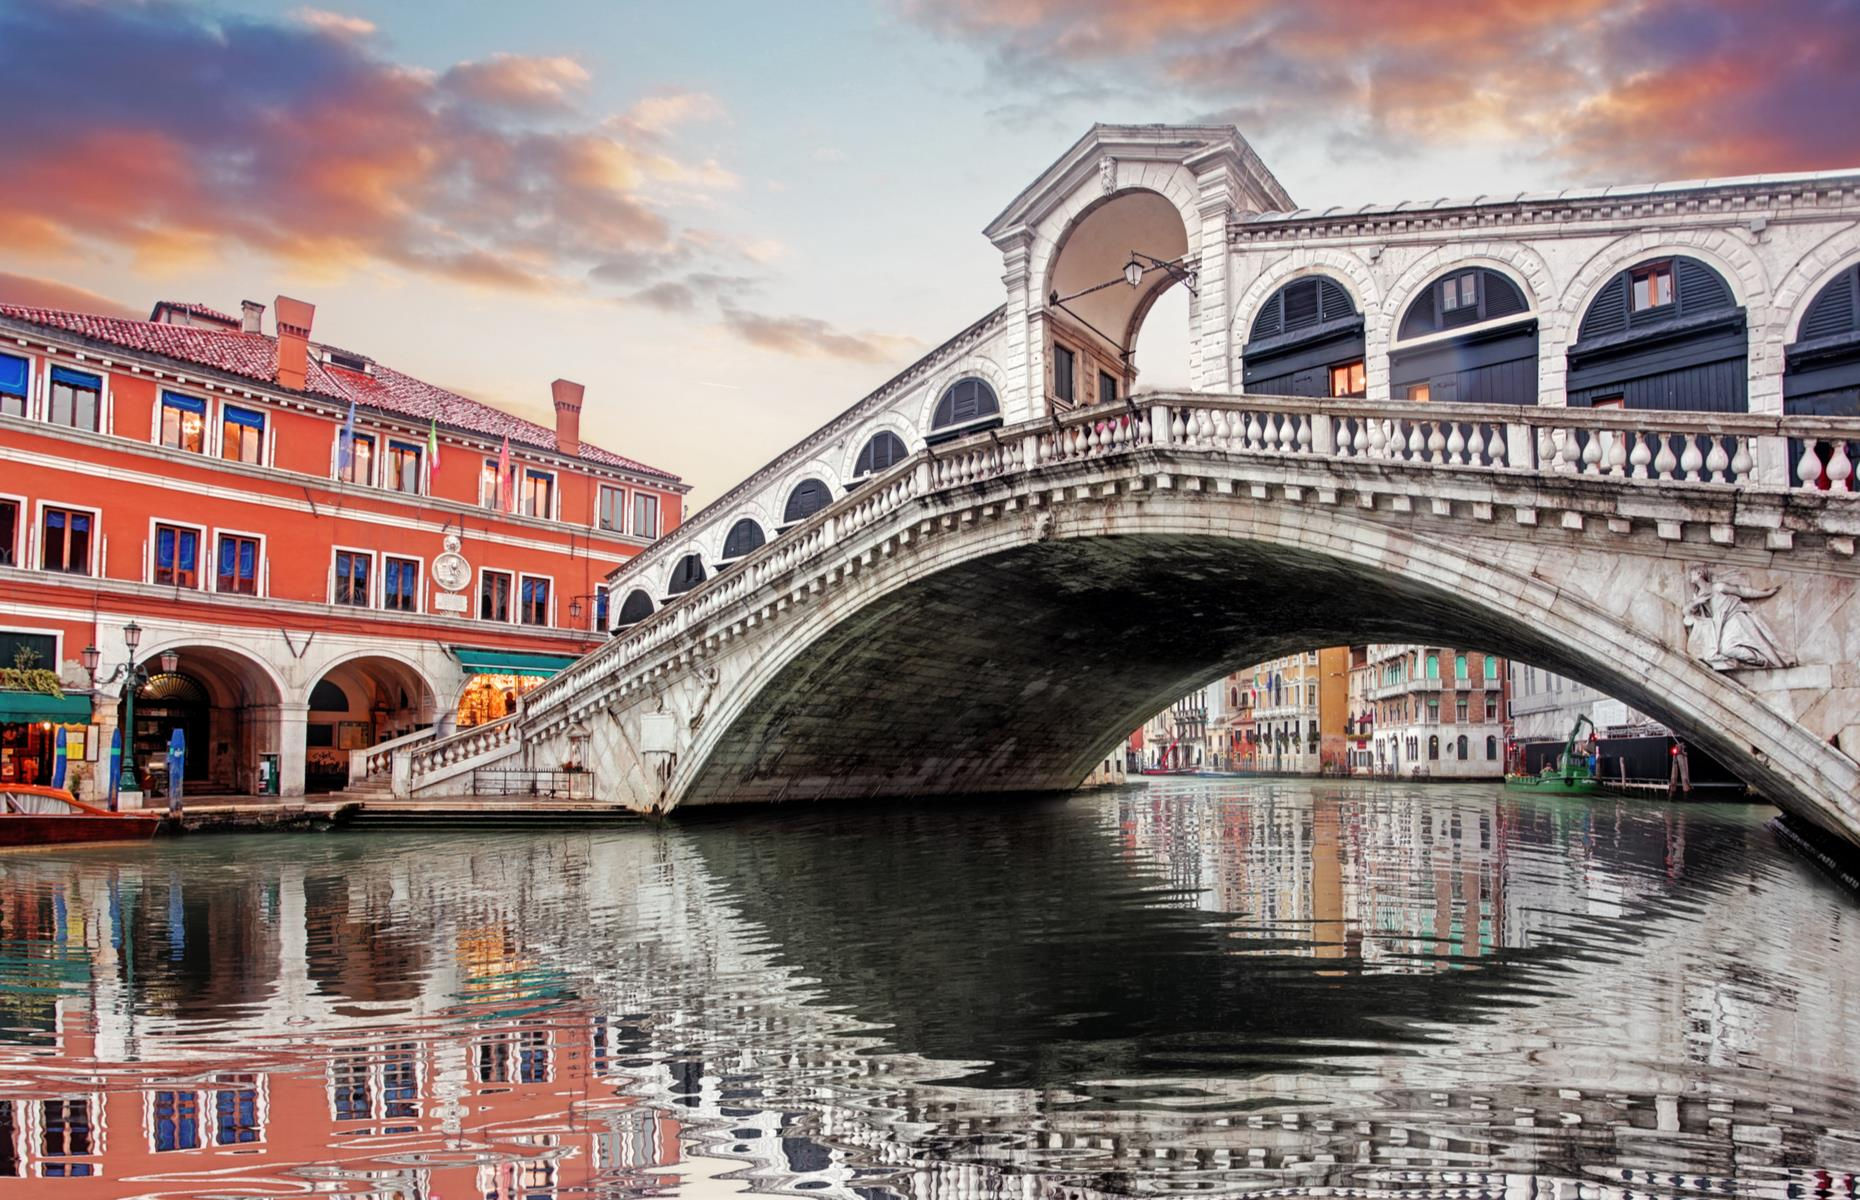 Slide 3 of 31: The 16th-century Rialto Bridge – or Ponte di Rialto – crosses over the narrowest point of Venice's Grand Canal, and is held up as a great feat of Renaissance-era architecture. An elegant arch complete with stone reliefs, Rialto replaced a wooden structure that had existed here since the 12th century and today it's the oldest bridge to span the famous canal.